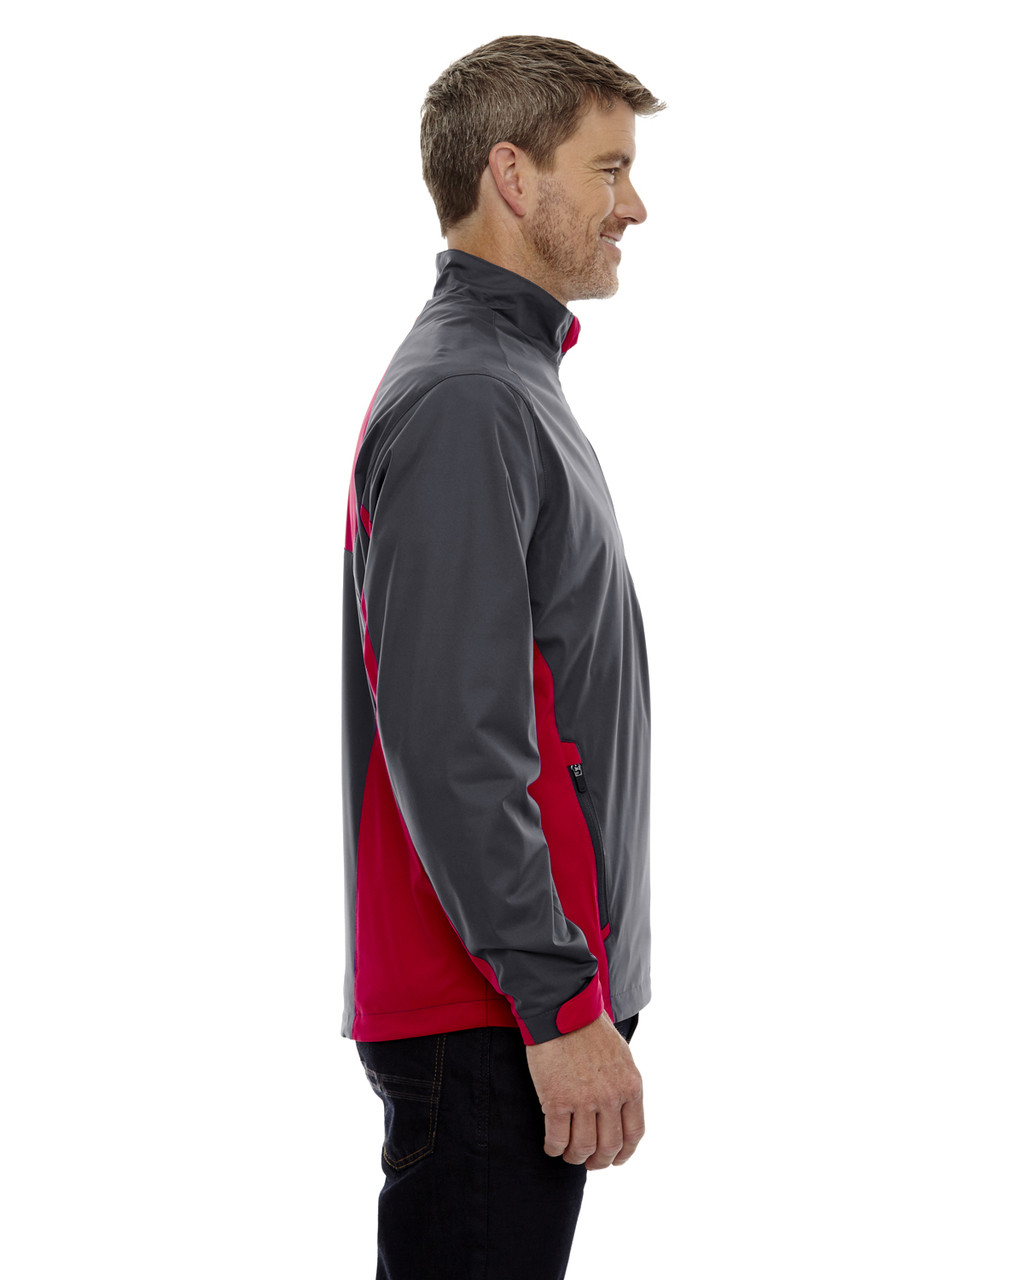 Black Silk-side 88656 North End Sport Red Laminated Performance Stretch Wind Shirt